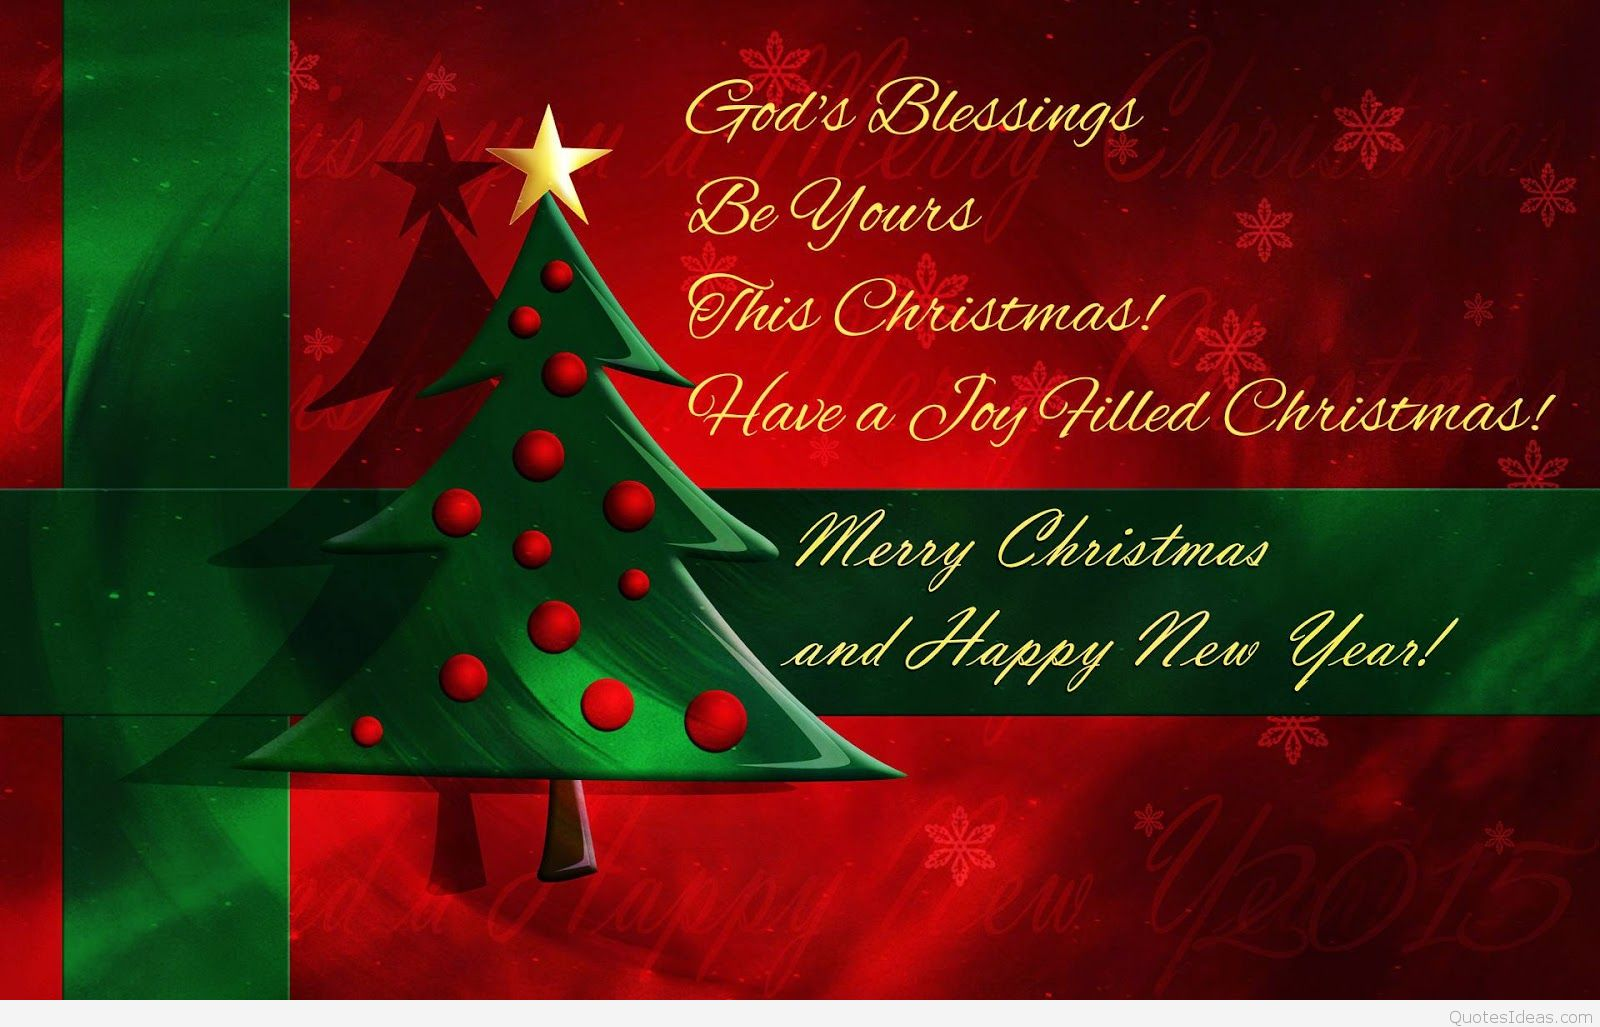 Elegant Merry Christmas Quotes For Cards Ltcl2mhh2